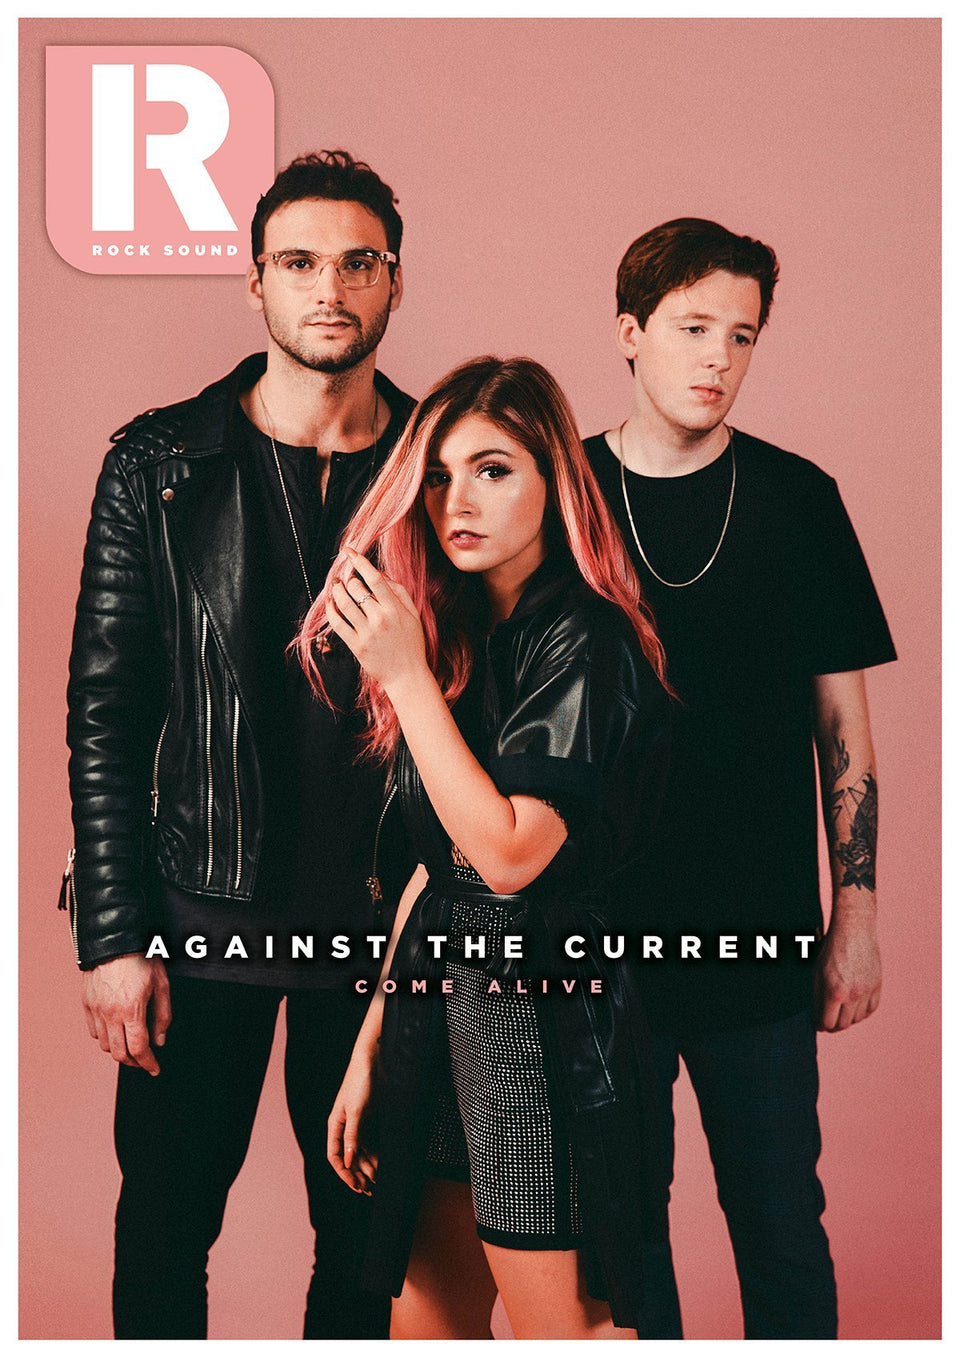 Rock Sound Issue 245 - Against The Current